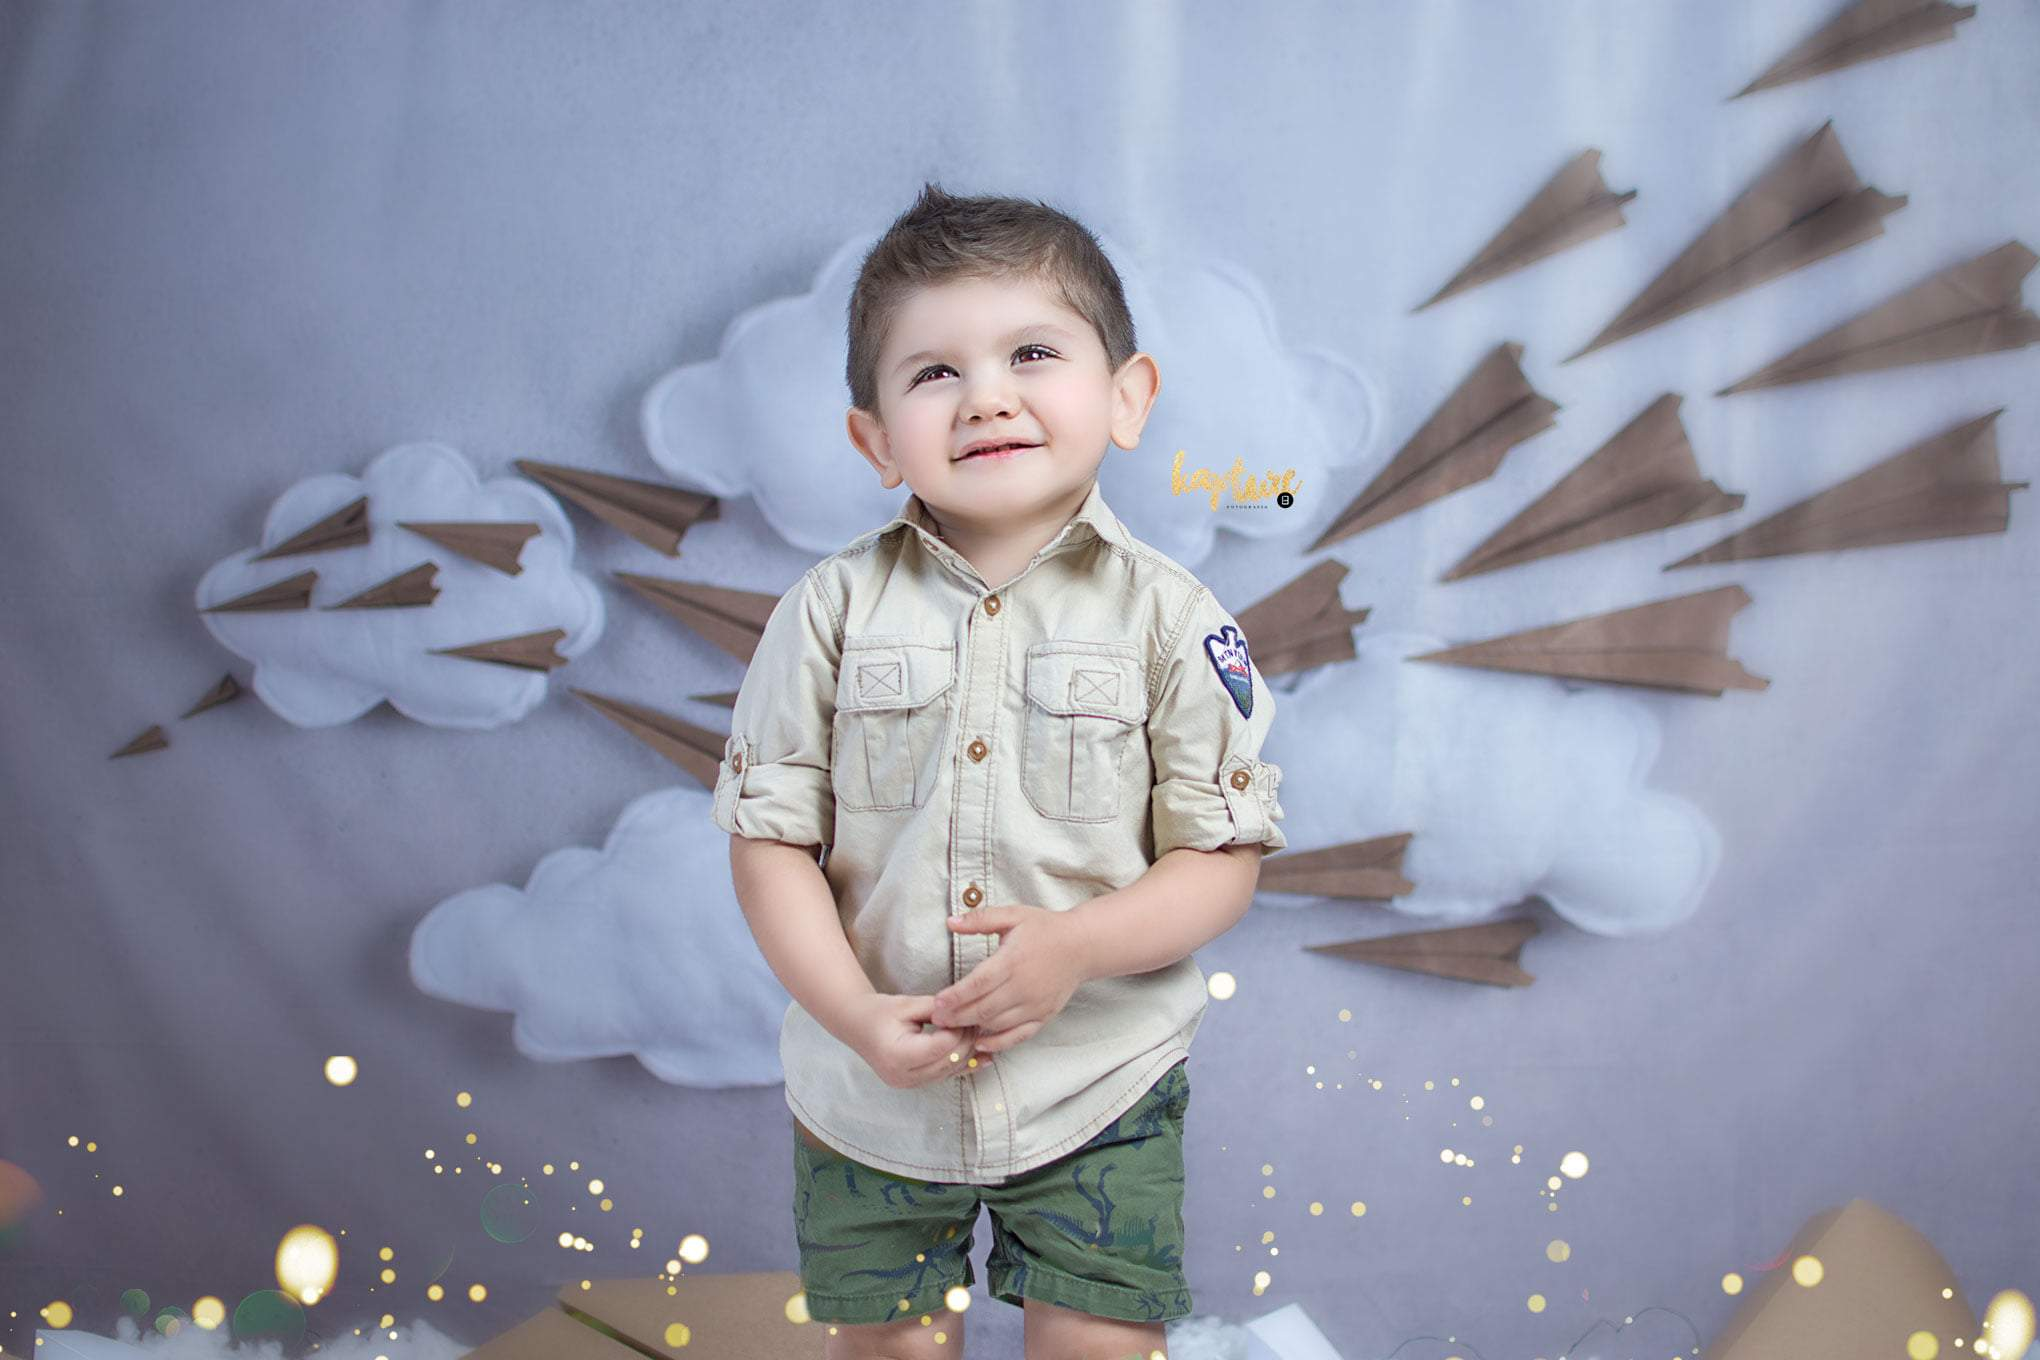 Load image into Gallery viewer, Katebackdrop£ºKate Paper Airplane with Clouds Children Backdrop for Photography Designed by Danette Kay Photography